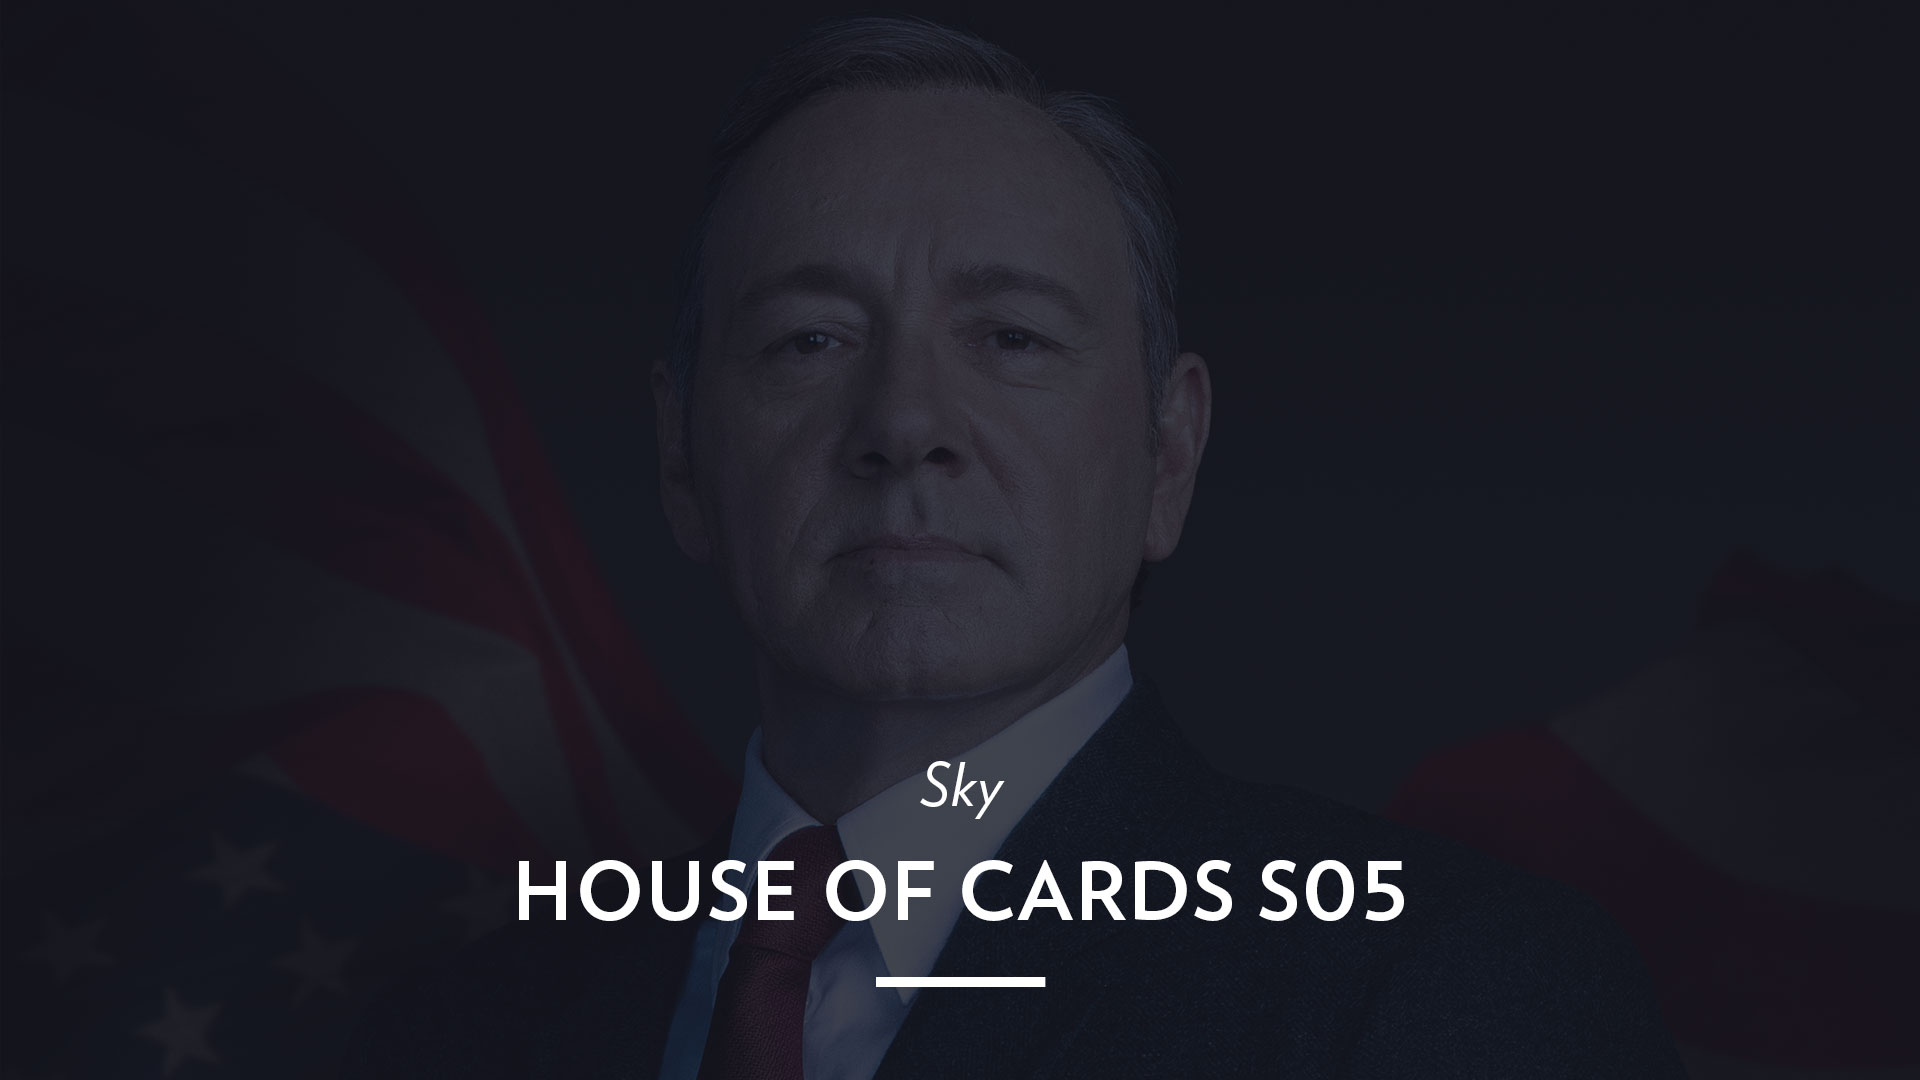 Sky – House of Cards